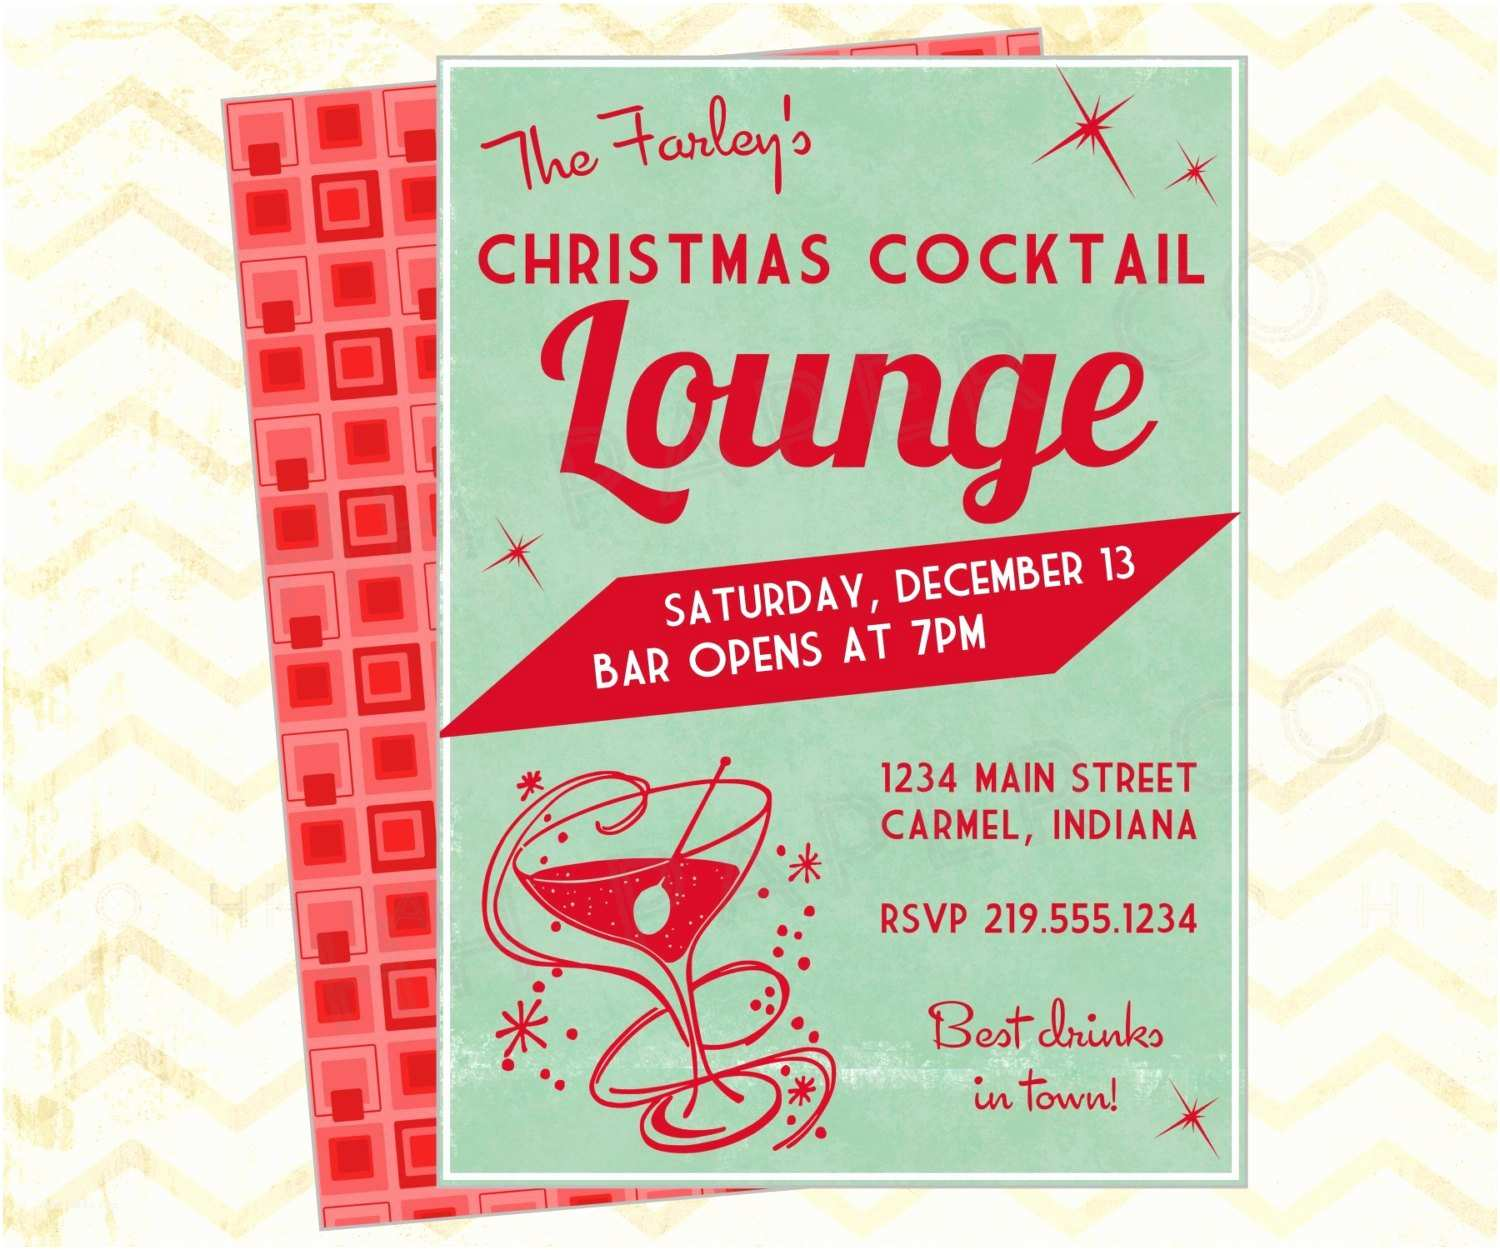 Christmas Cocktail Party Invitations Retro Christmas Cocktail Party Printable Invite Lounge